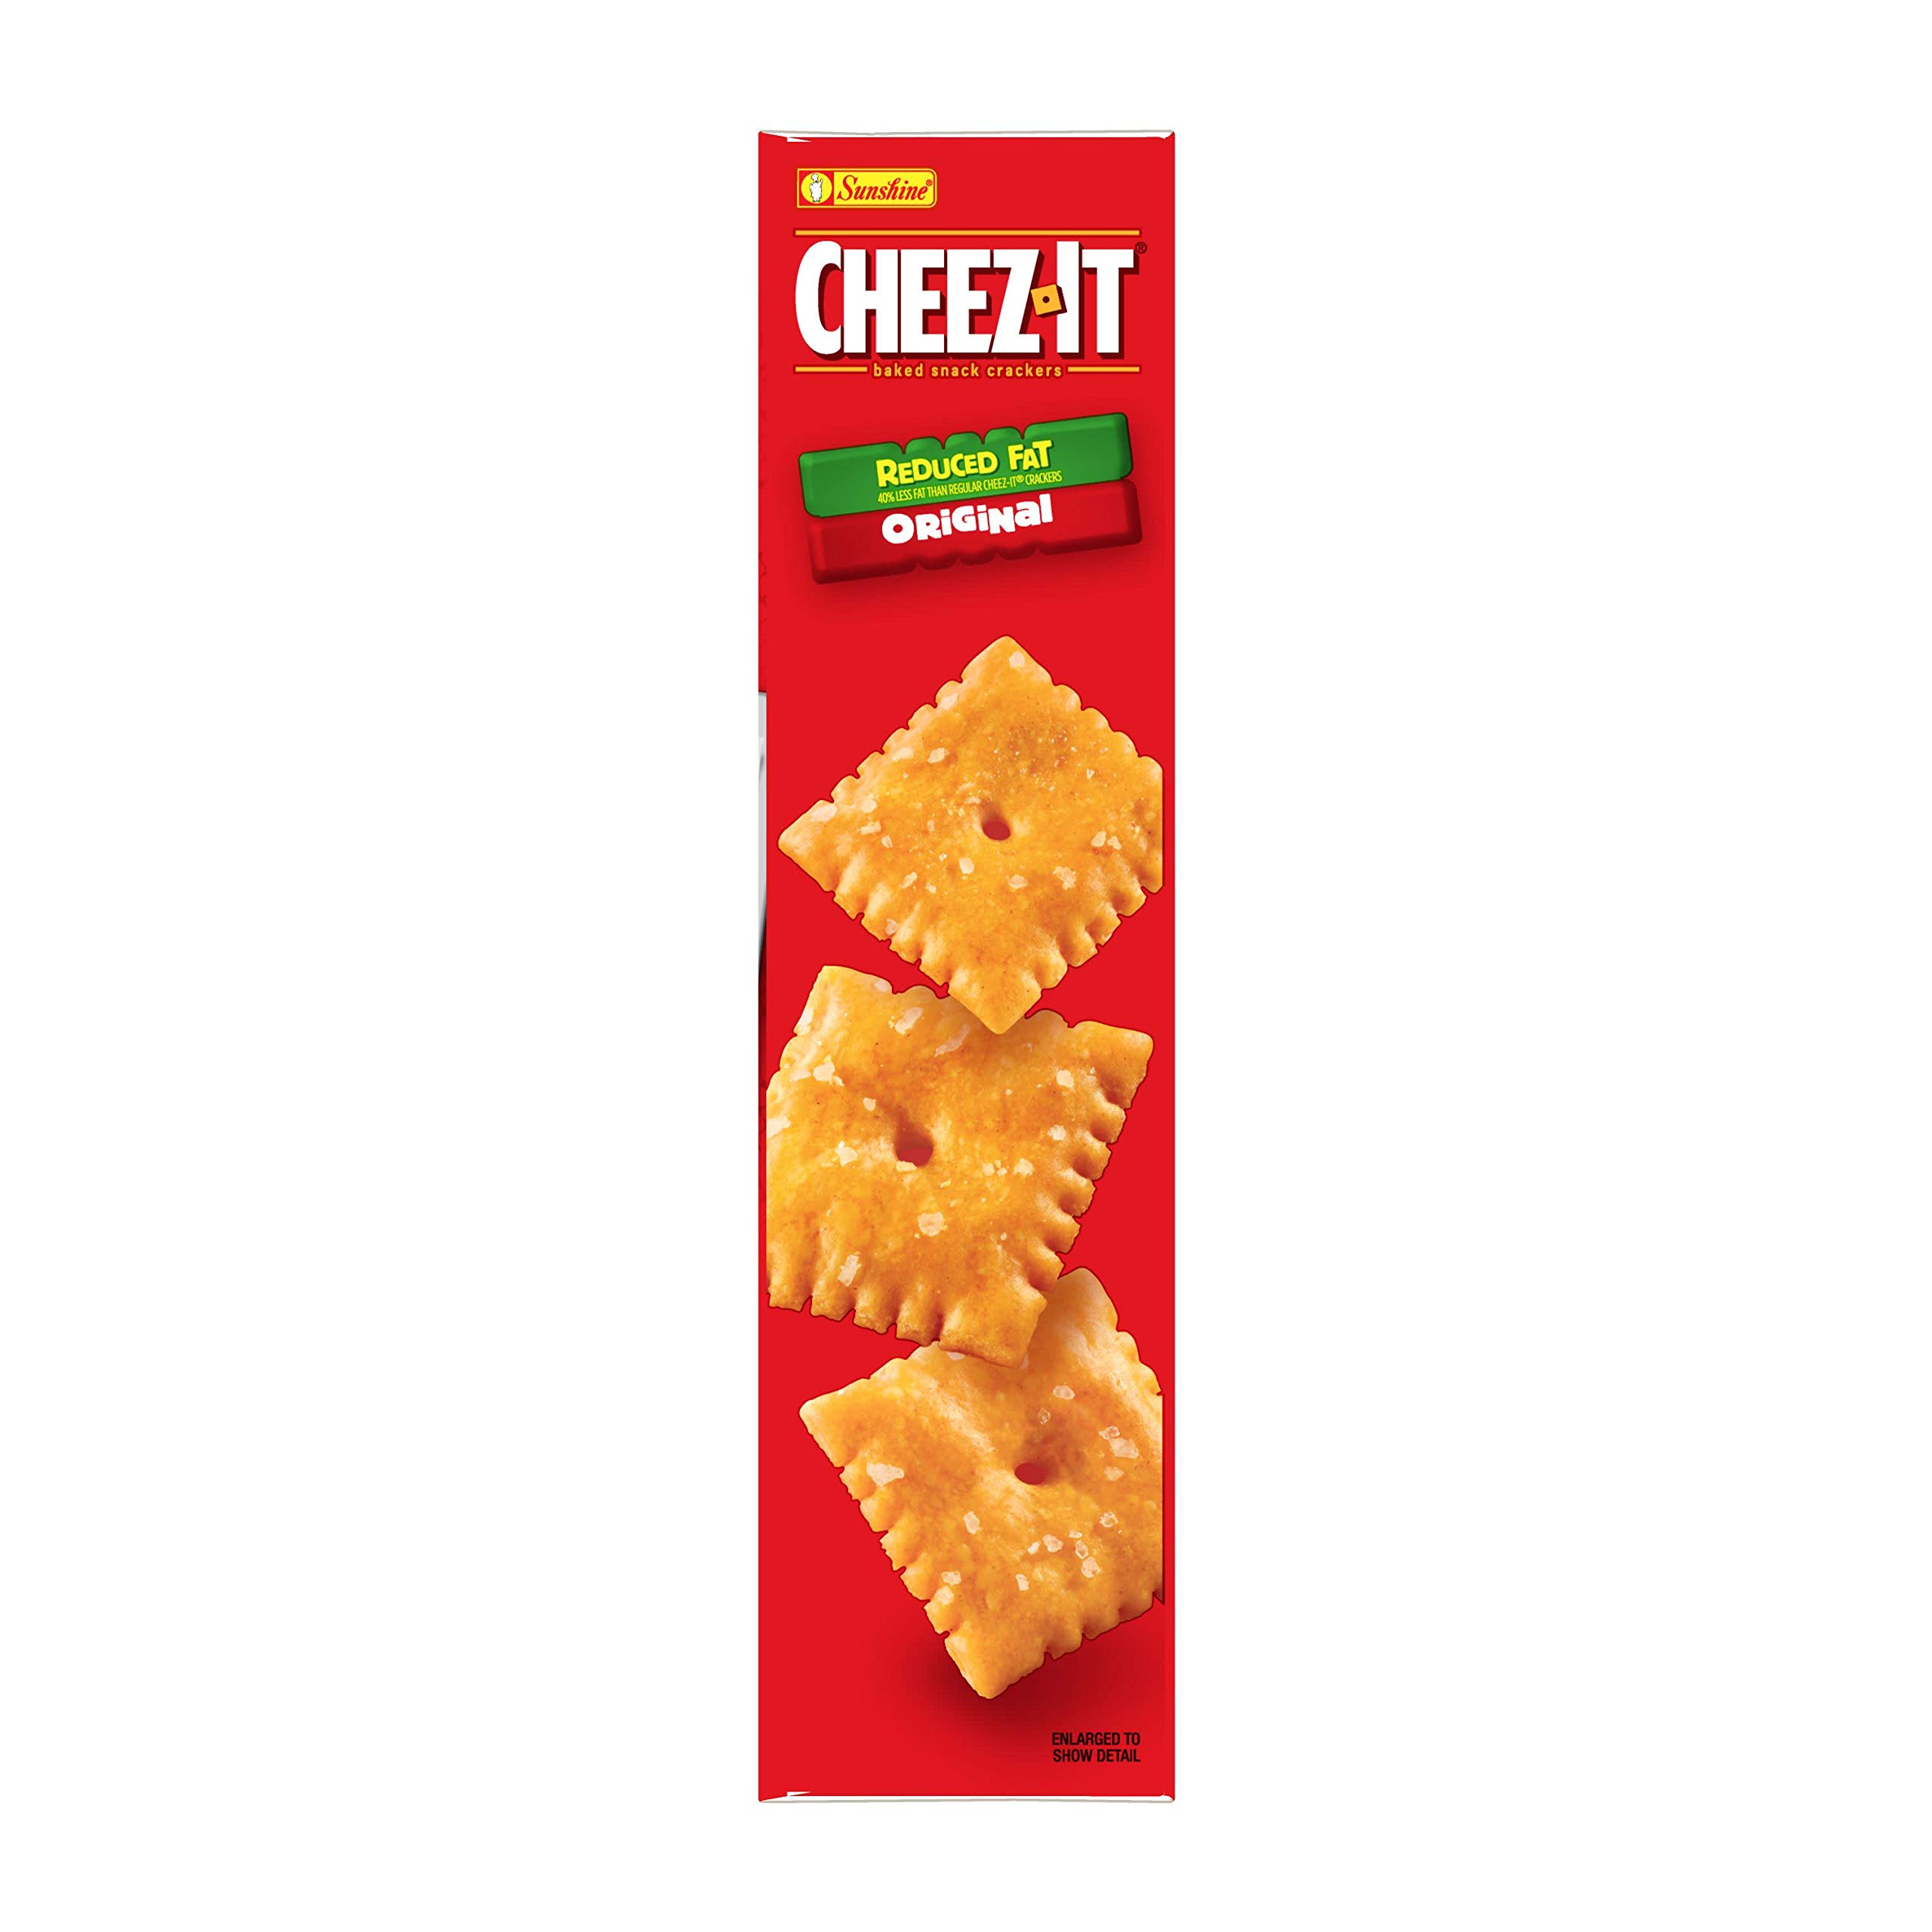 Cheez-It Baked Snack Cheese Crackers, Reduced Fat, Original, 6 oz Box(Pack of 12) by Cheez-It (Image #6)